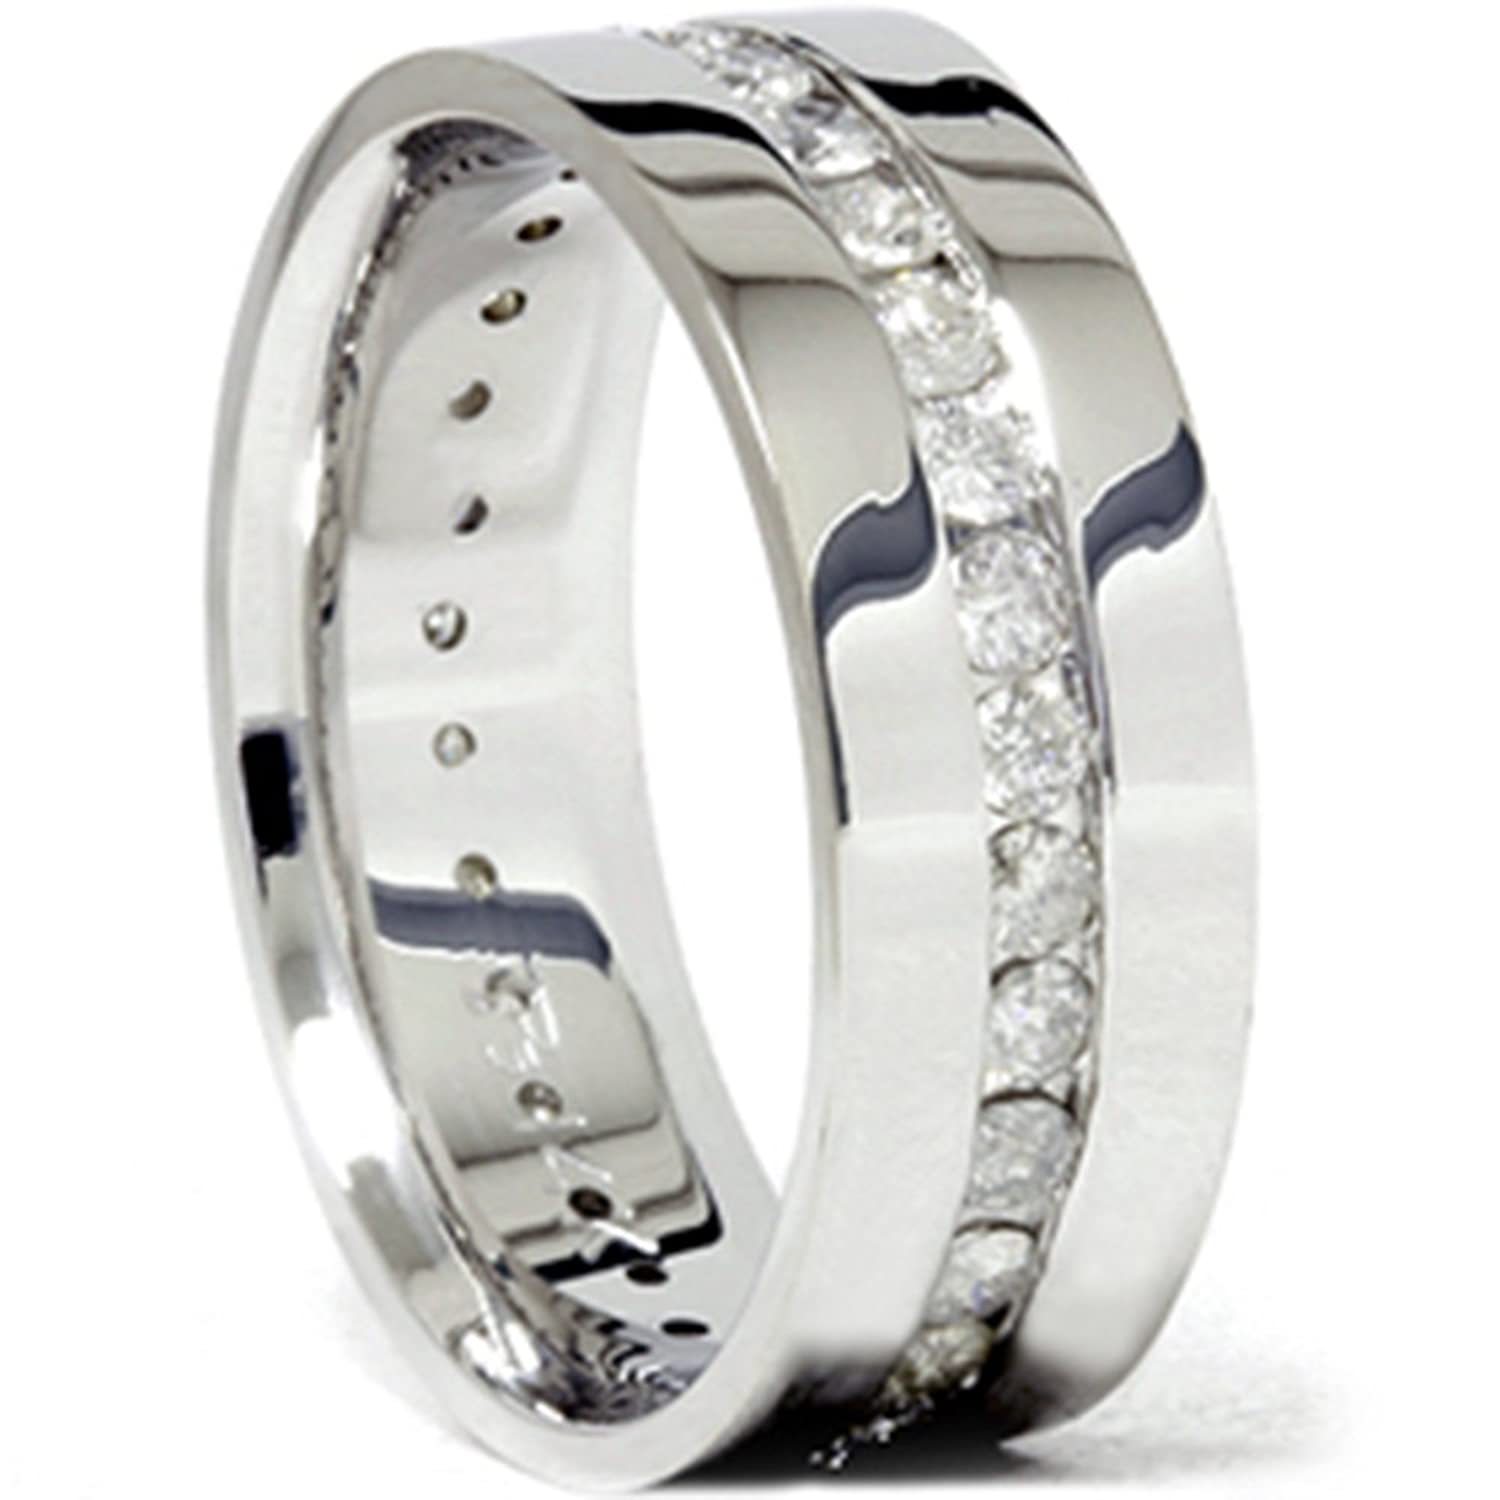 jewellery rings with image engagement love besttohave and unisex i you wedding engraved band mens ring bands titanium